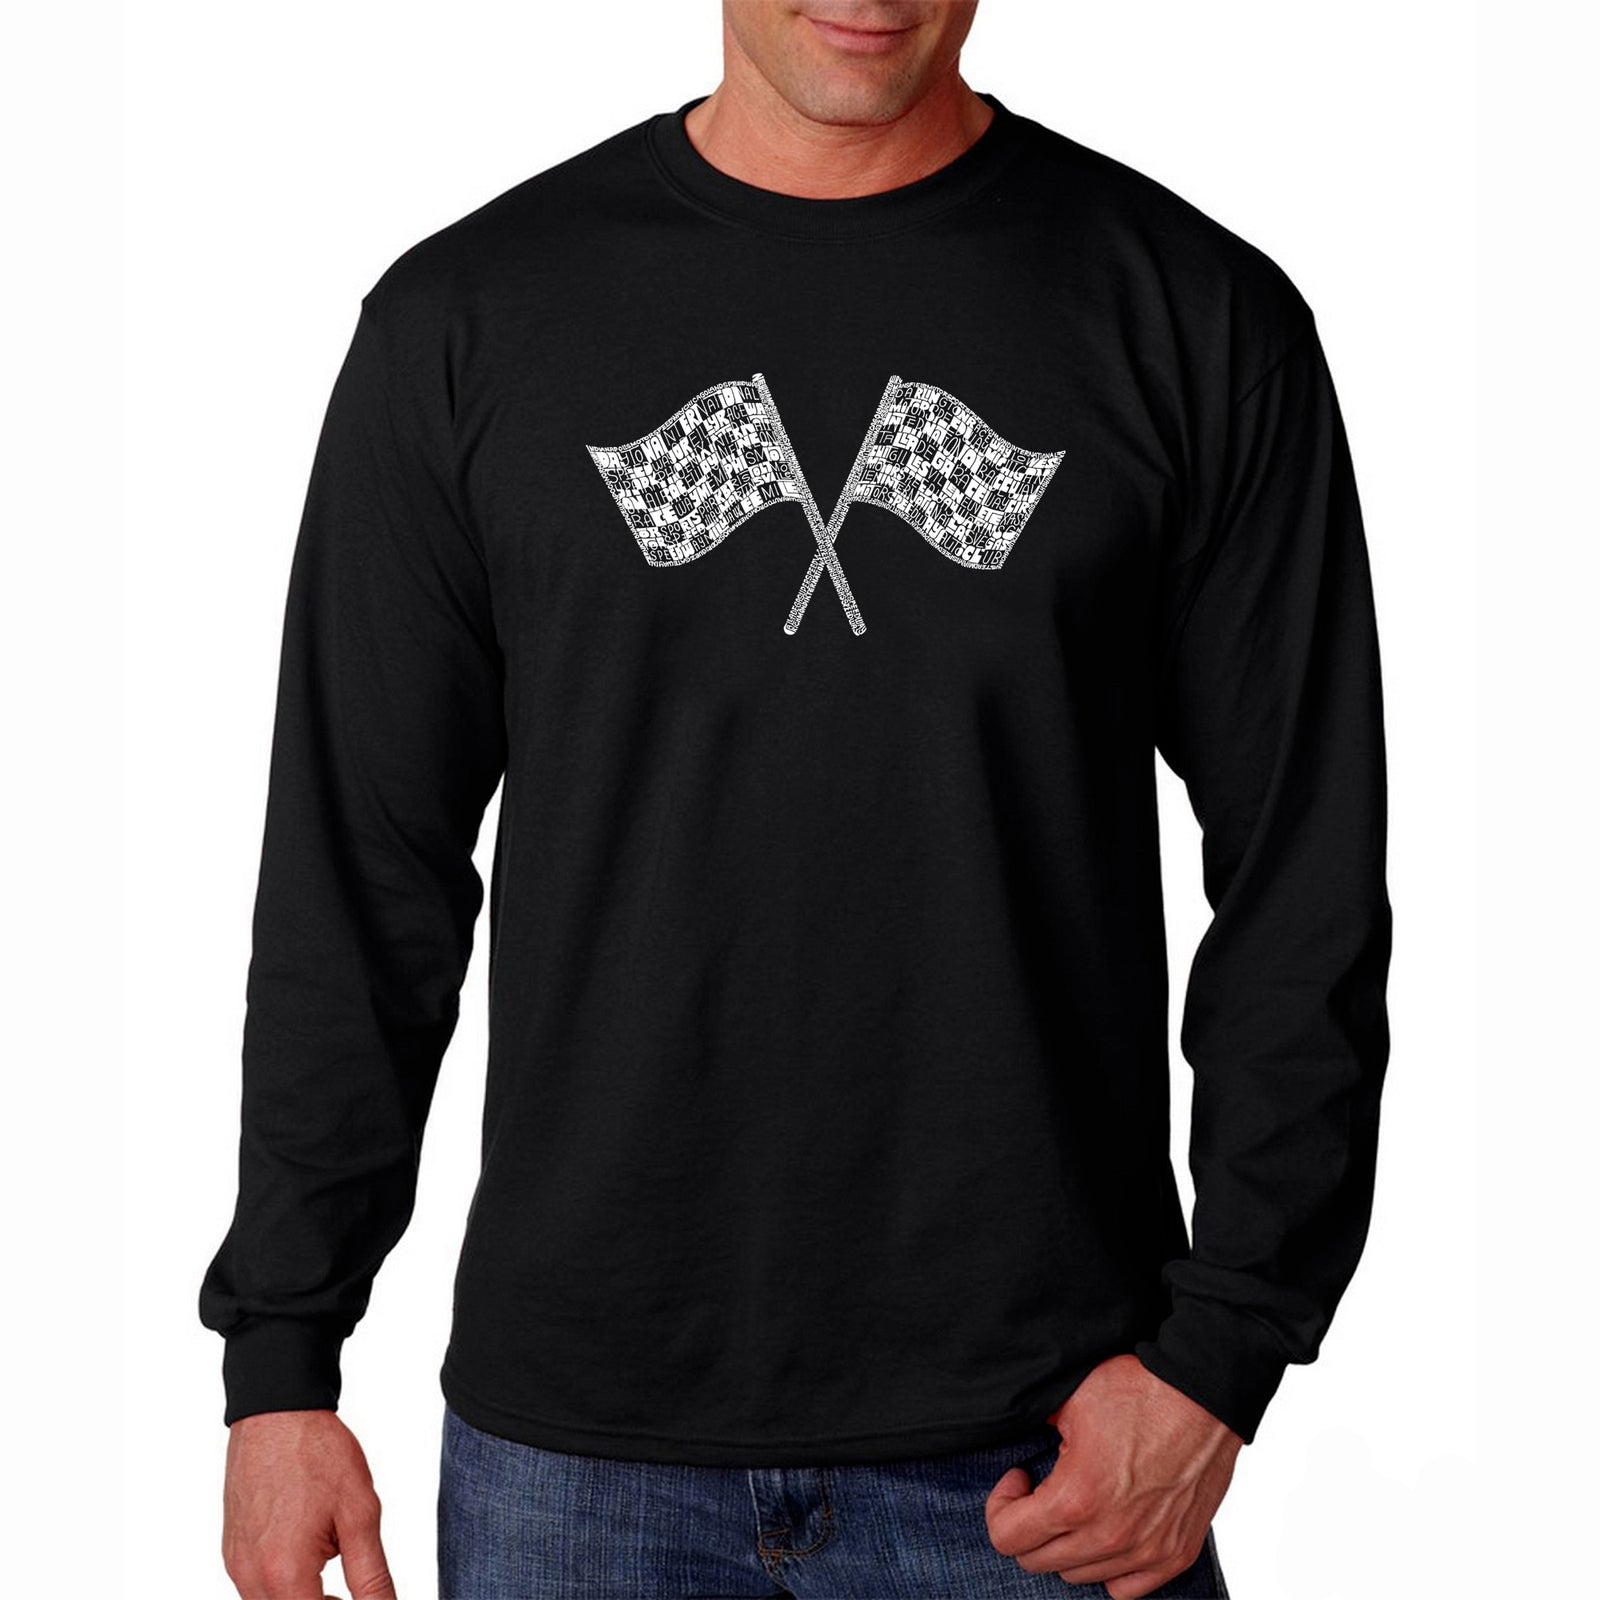 Men's Long Sleeve T-shirt - NASCAR NATIONAL SERIES RACE TRACKS